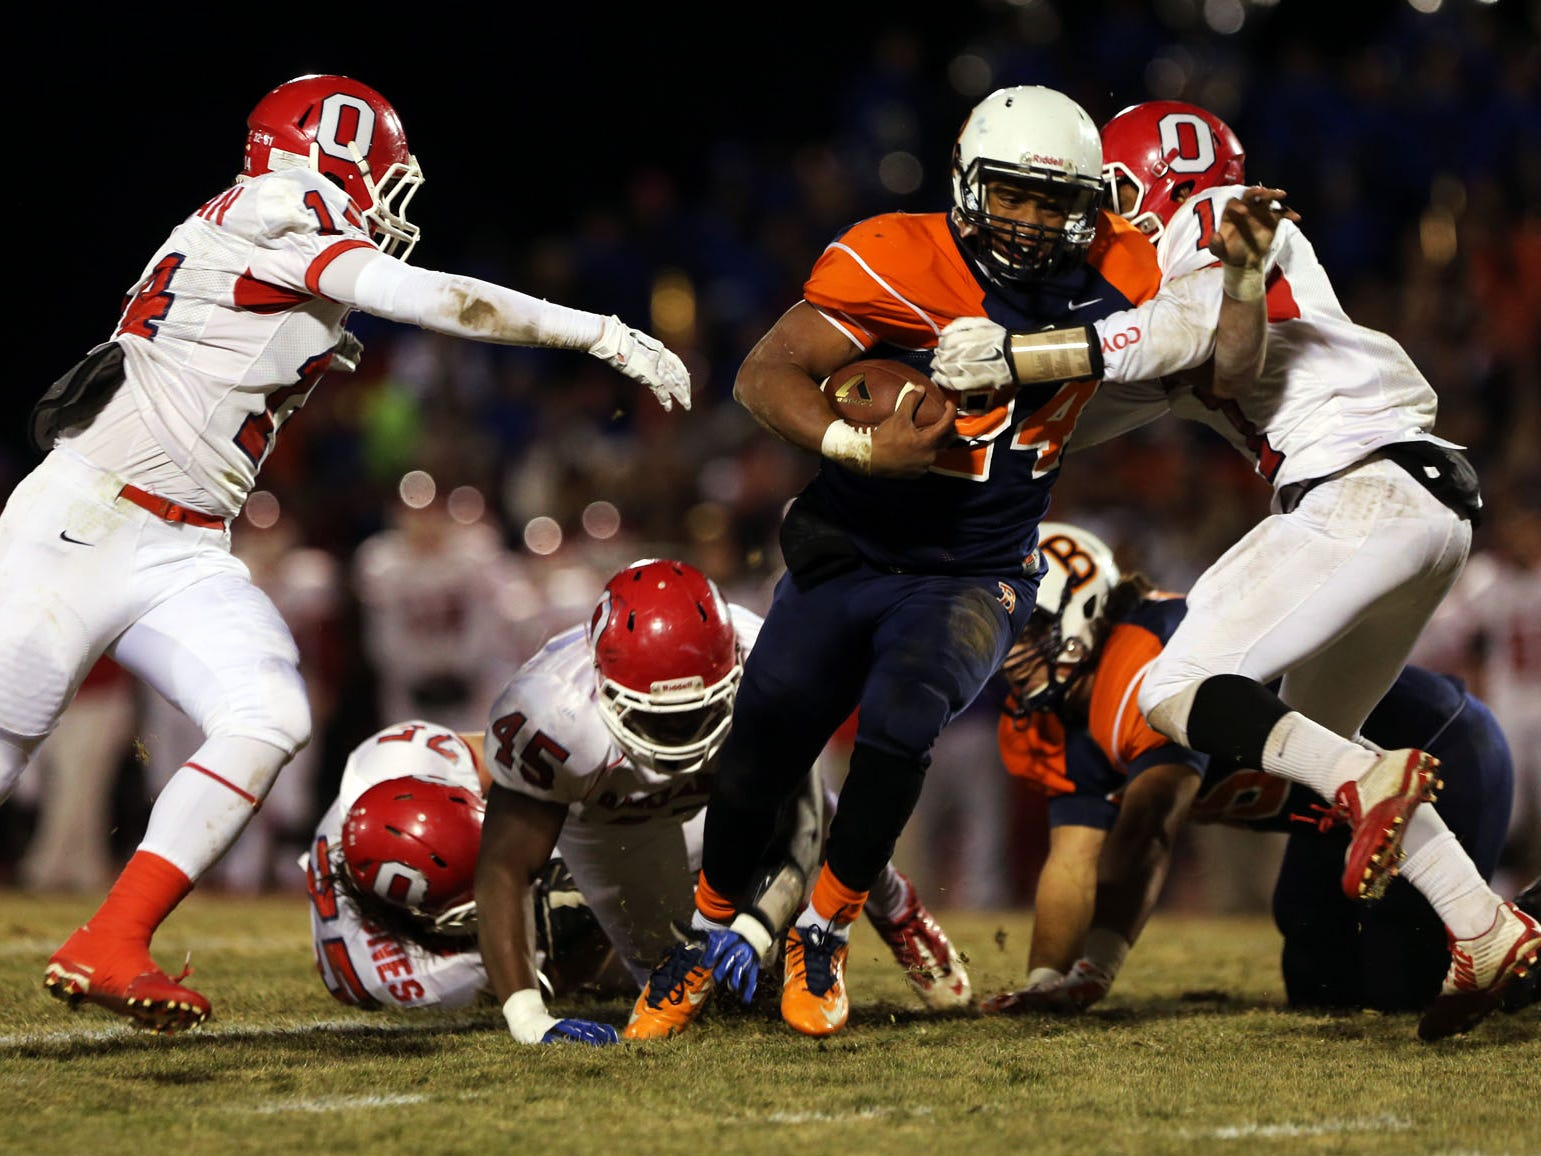 Blackman running back Charlie Davidson is hit by Oakland's Tyler Black, right, as Oakland's Cameron Newman closes in on the left in the first half of the play-off quarterfinal Friday, Nov. 21, 2014 at Blackman. Oakland won 20-9.